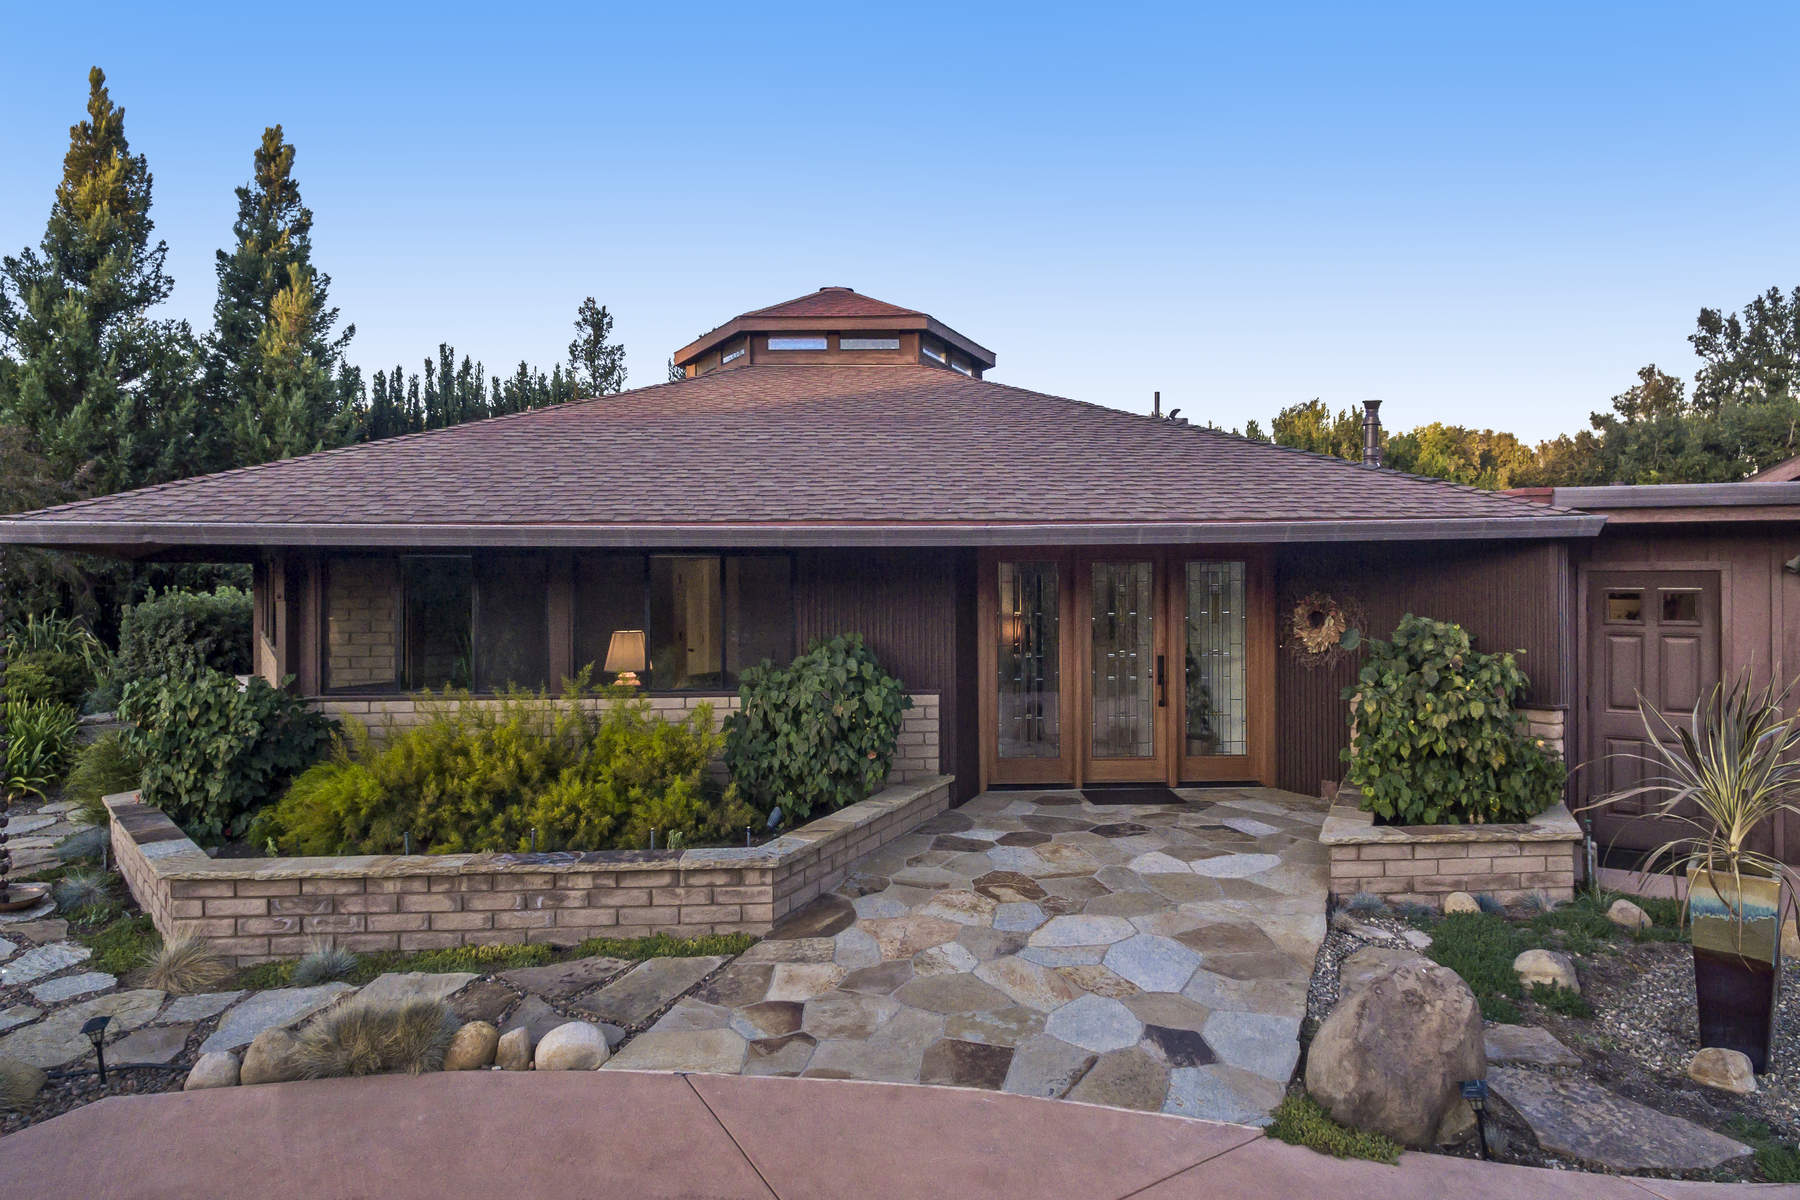 واحد منزل الأسرة للـ Sale في Mid Century Contemporary 1148 Oak Glen Road, Santa Ynez, California, 93460 United States